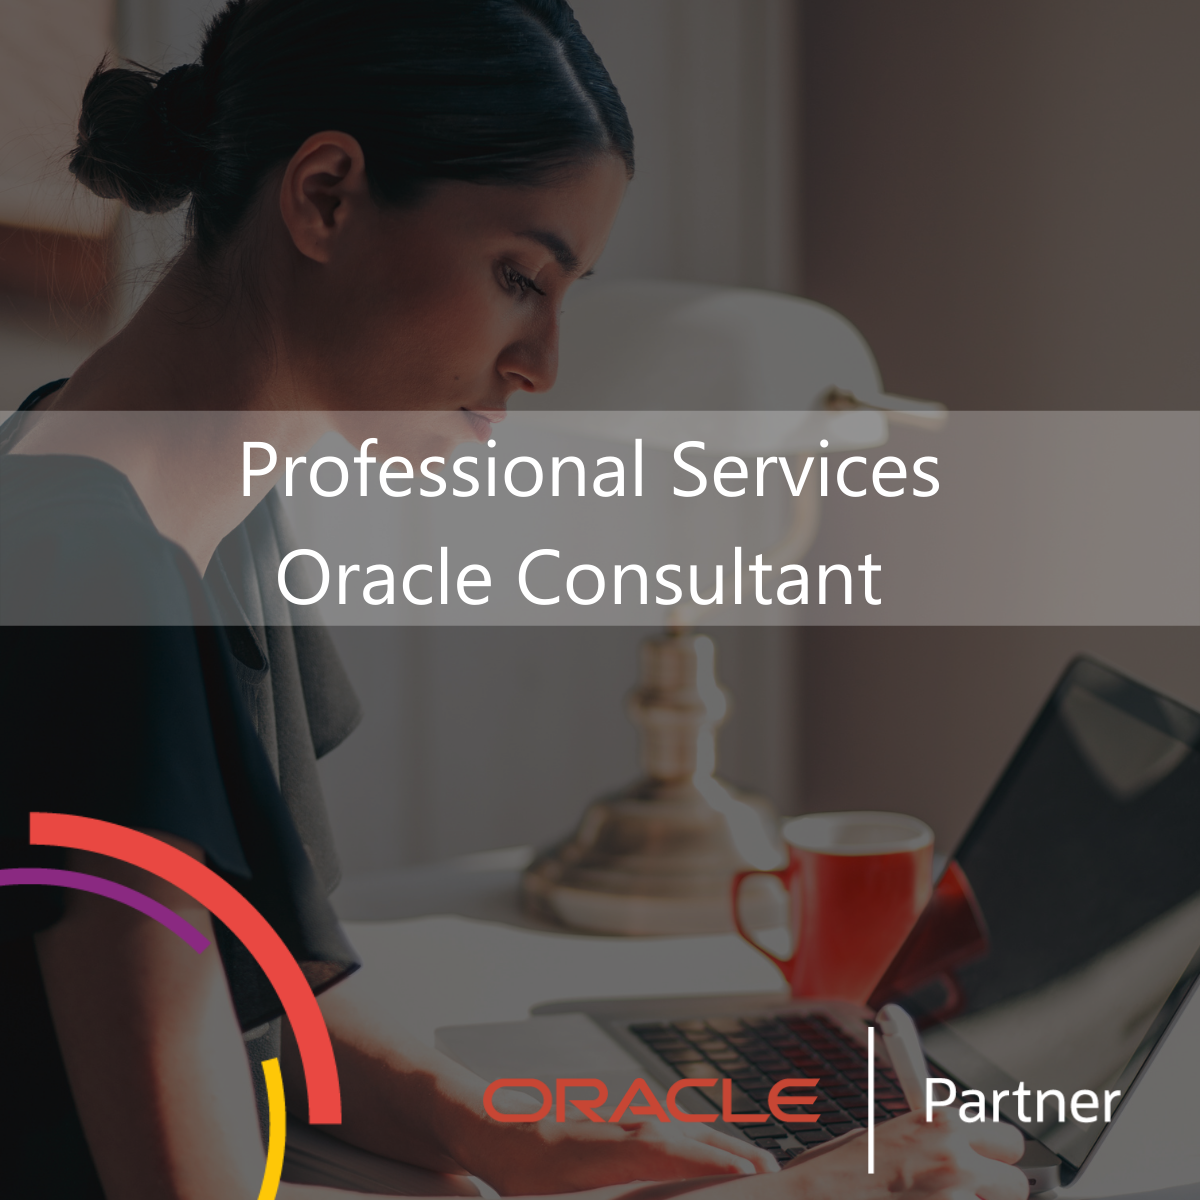 Professional Services Oracle Consultant